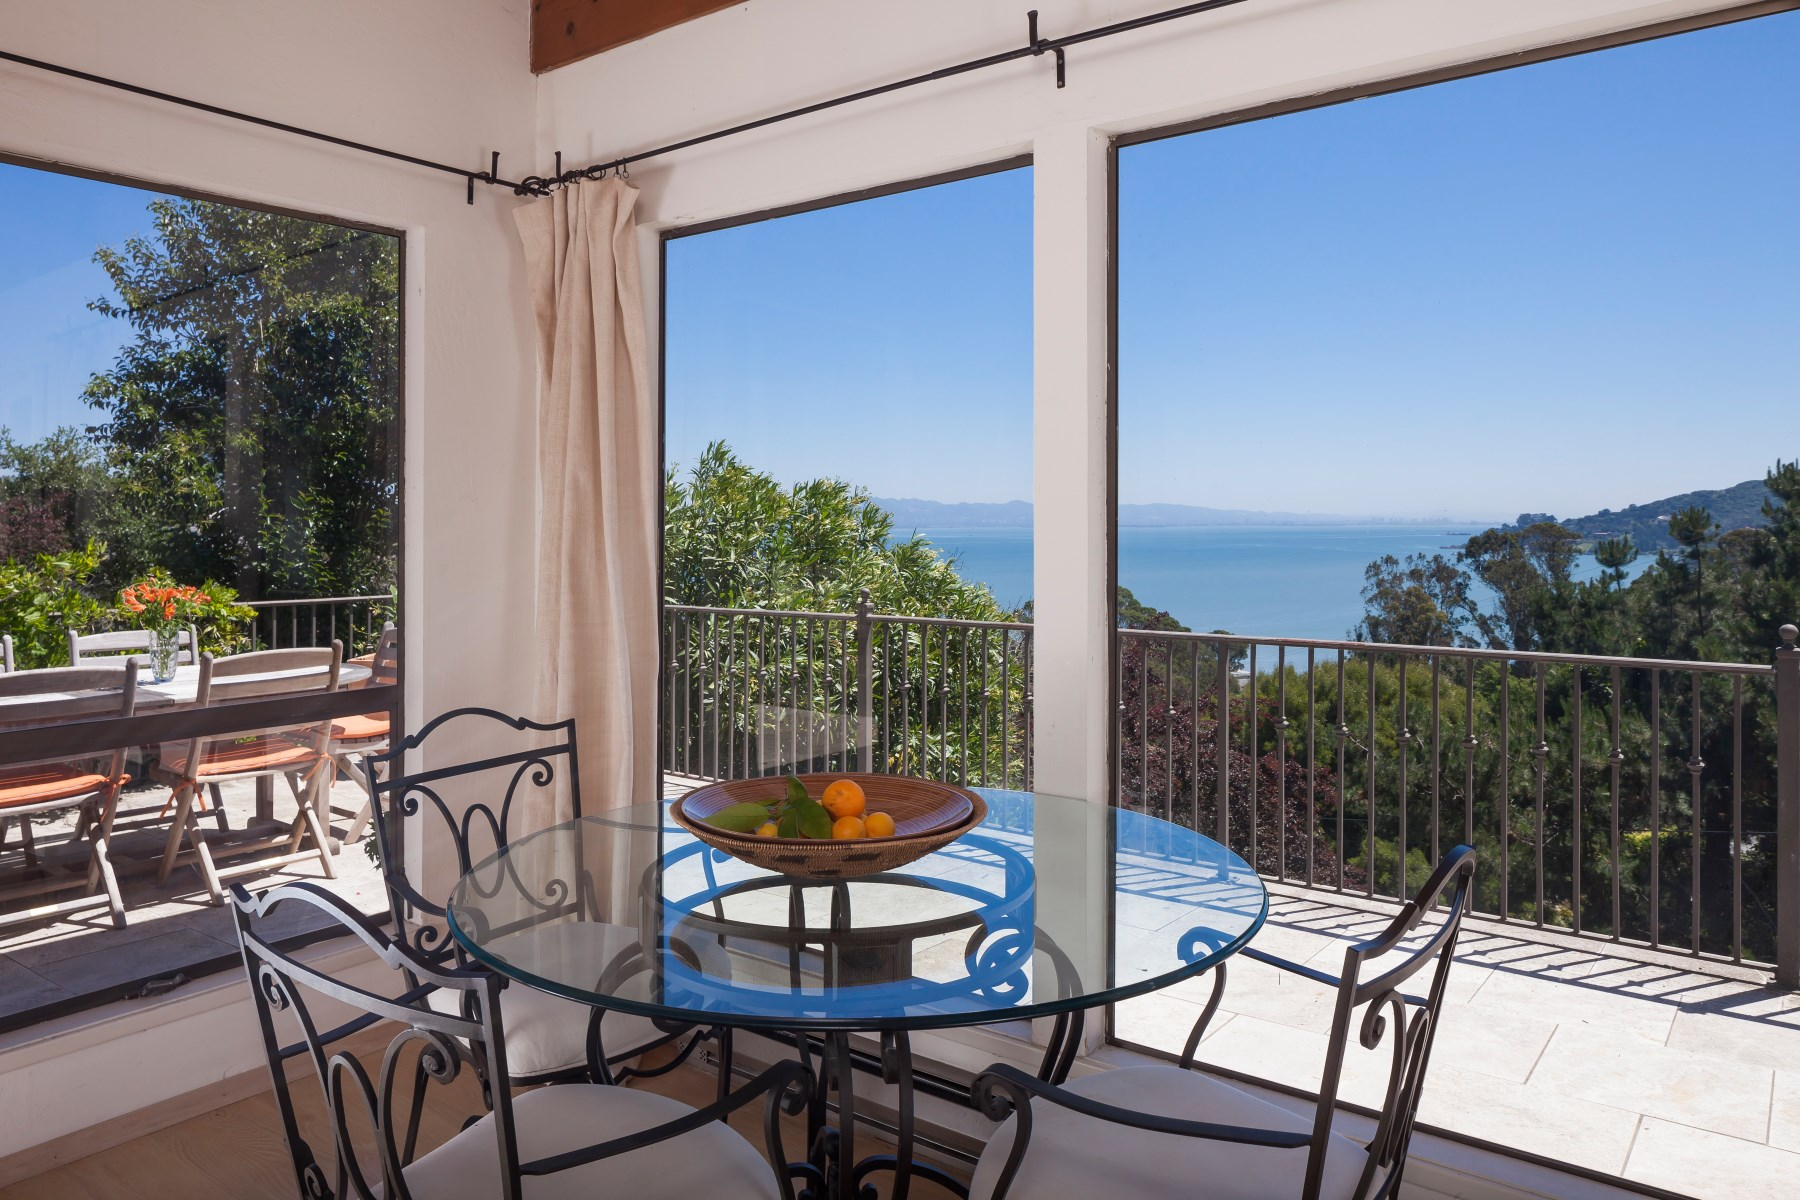 Single Family Home for Sale at Spectacular Bay Views 4625 Paradise Dr Tiburon, California 94920 United States